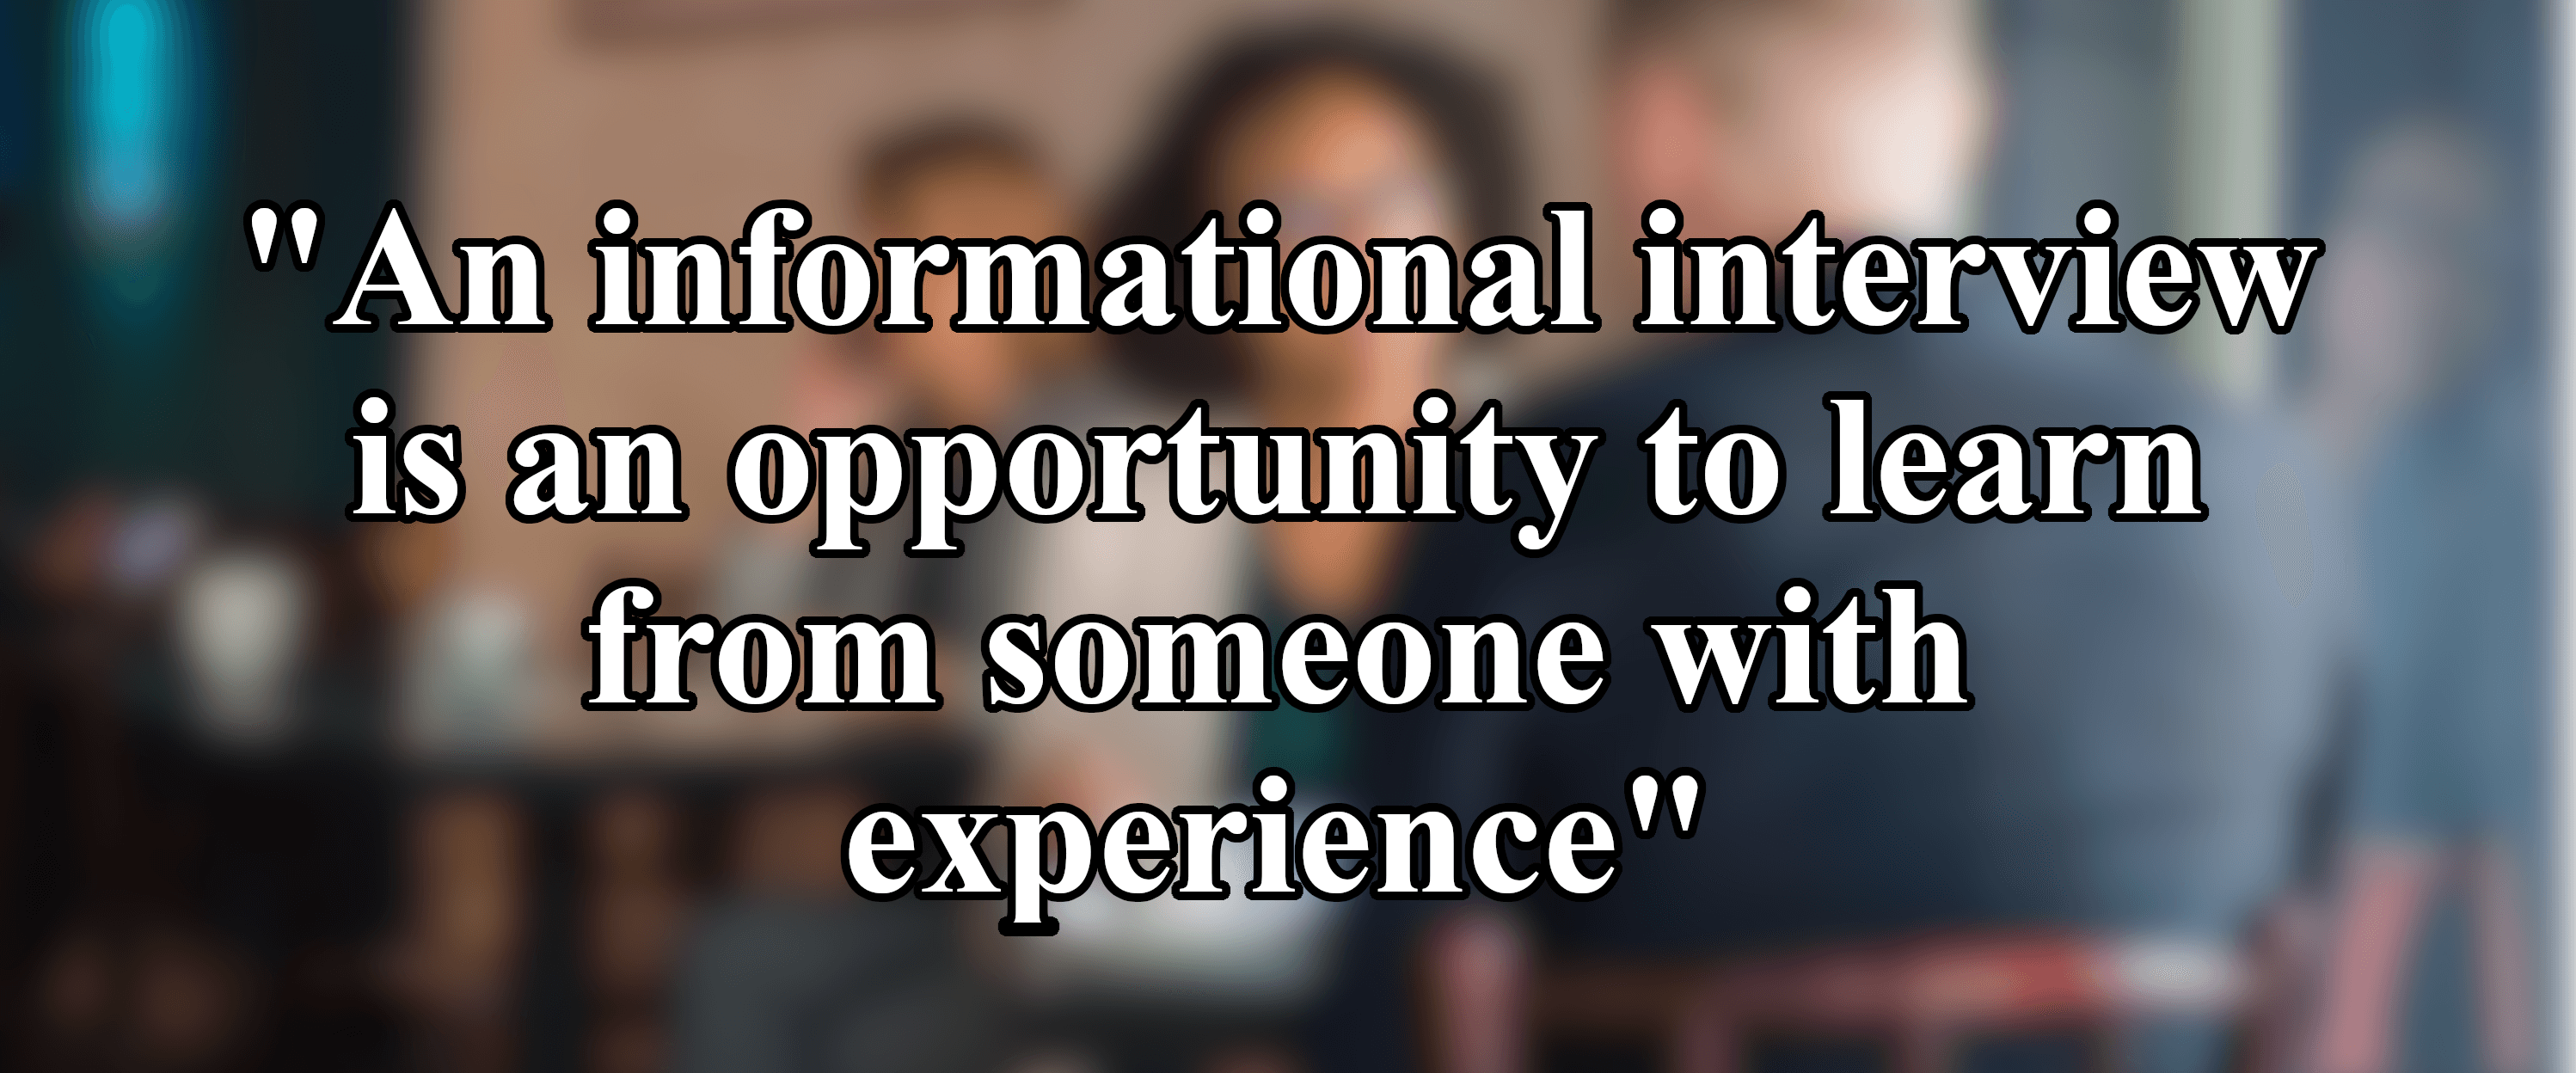 informational-interview-experience